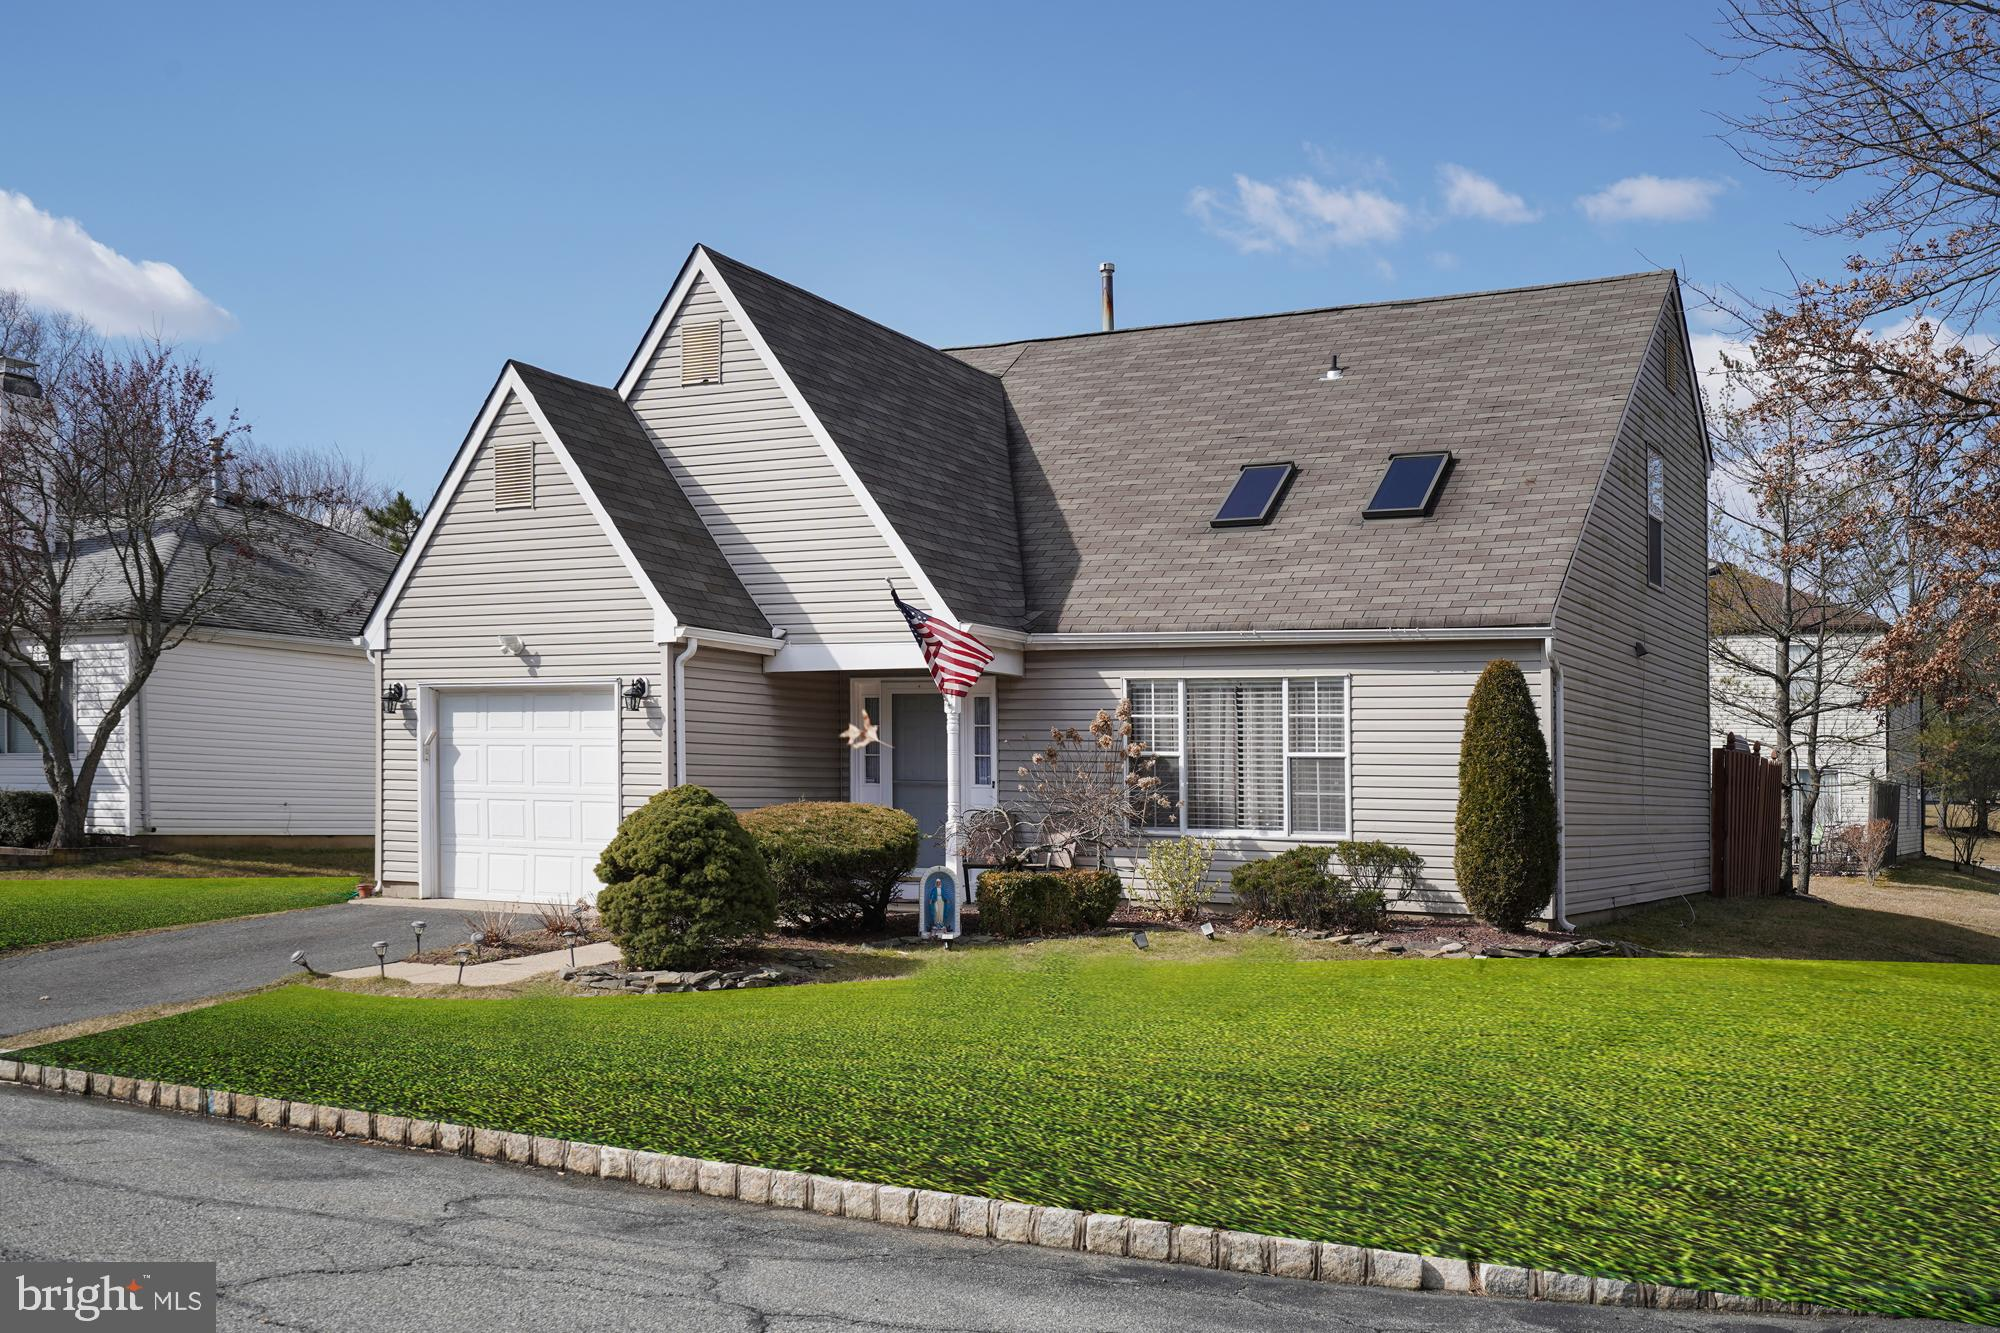 17 CANTERBURY COURT, OLD BRIDGE, NJ 08857